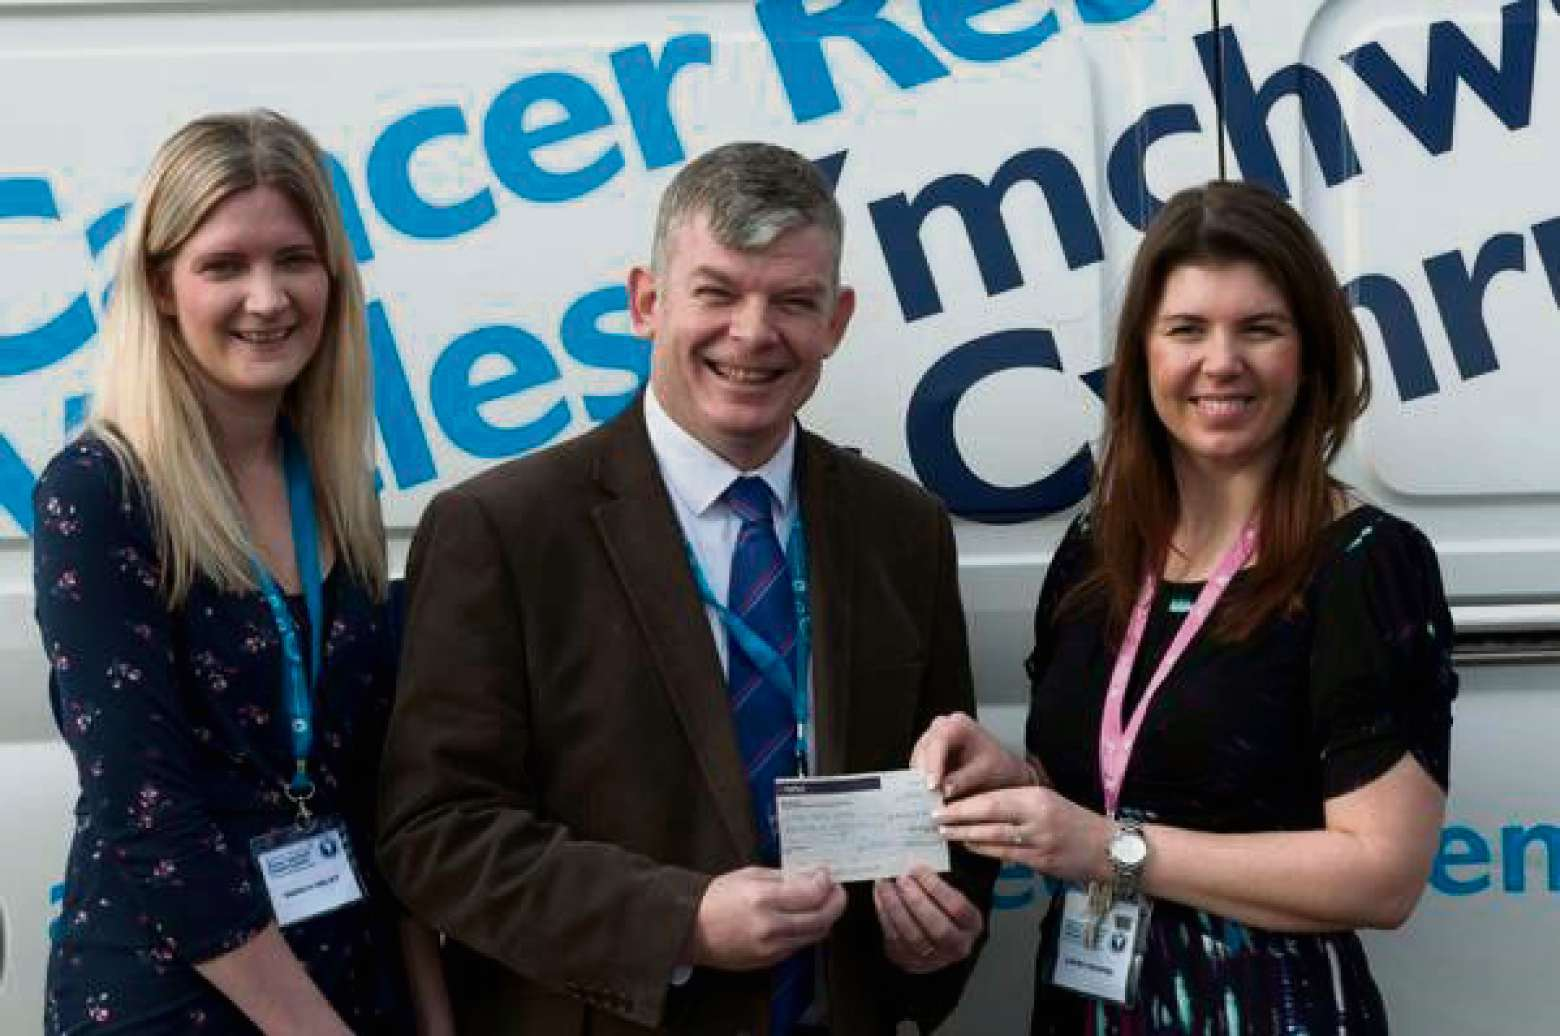 CHEQUE IN HAND: Sharon and Paul Haley, and Laura Hooper